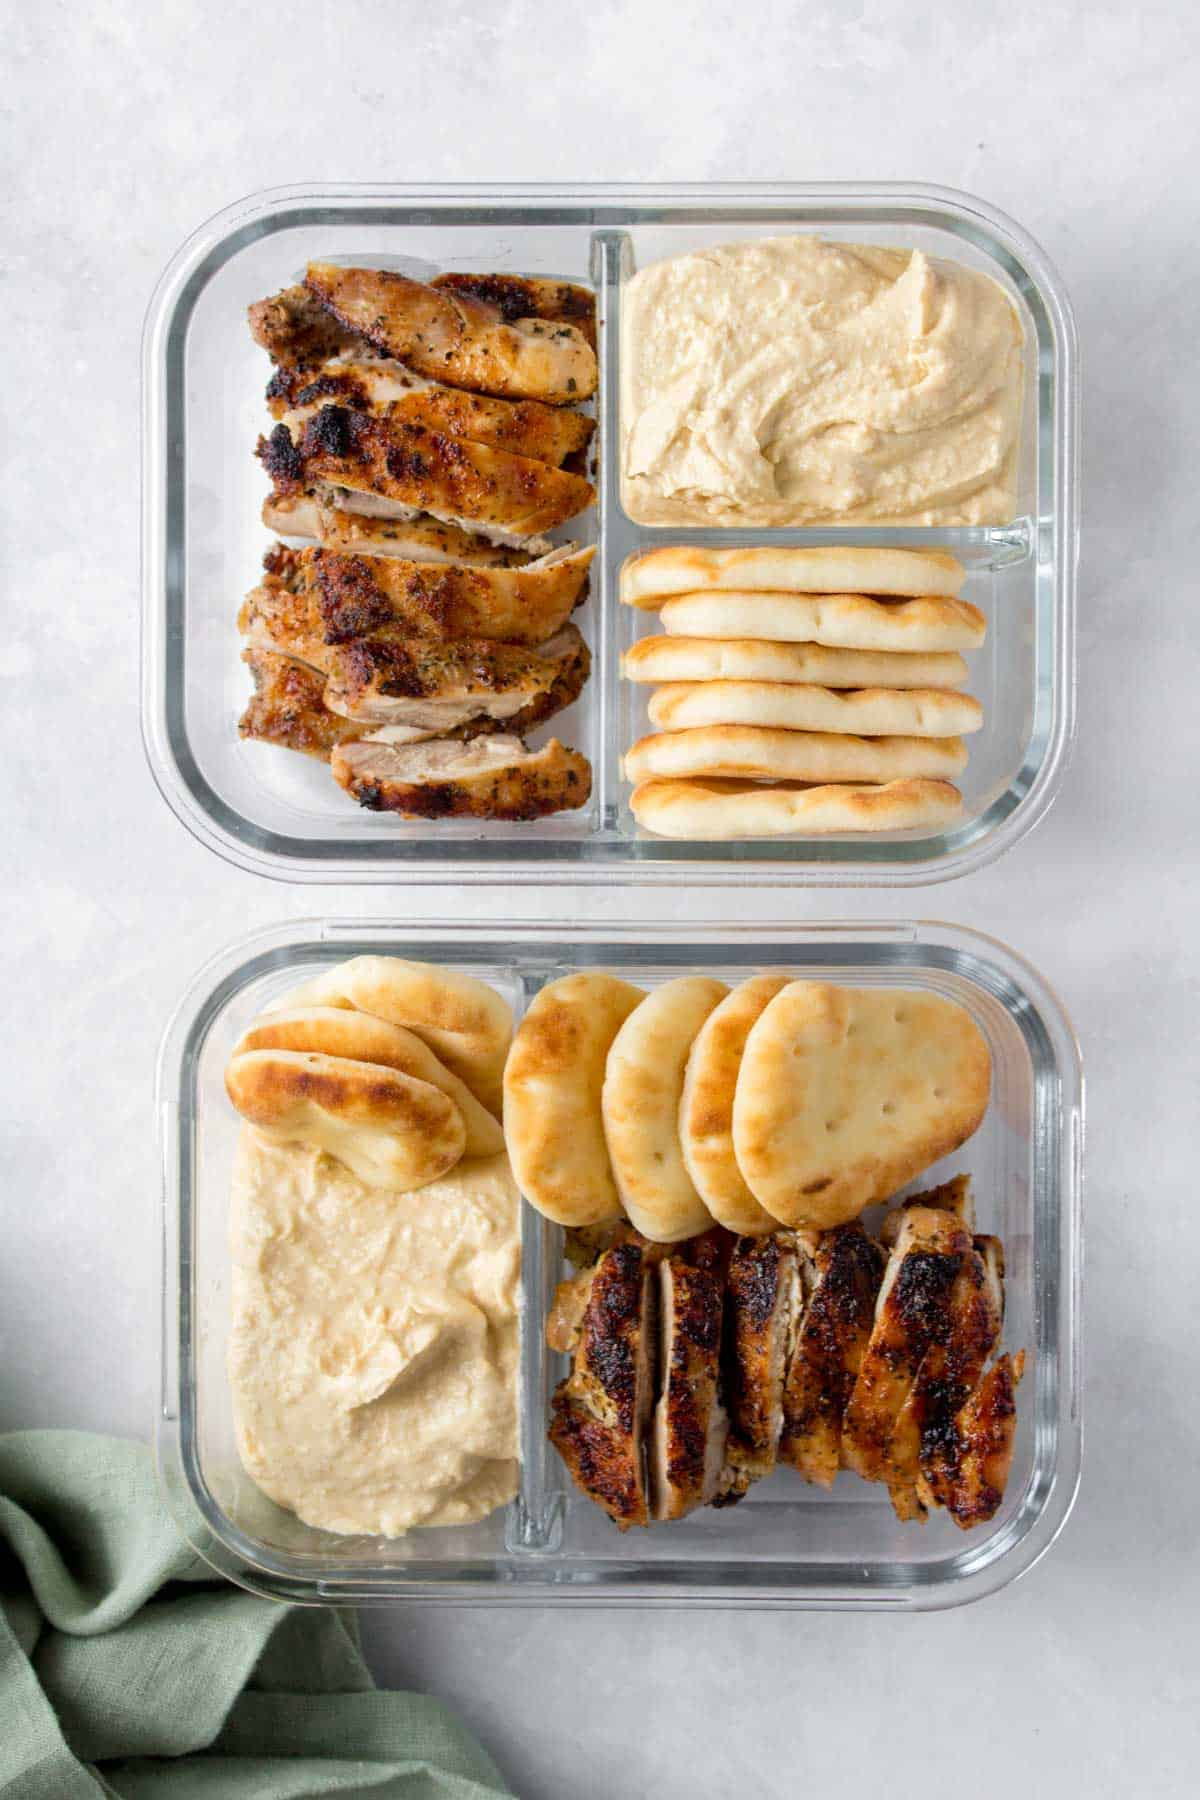 Overhead view of two meal prep containers with sliced chicken thighs, hummus, and mini naans/pitas.